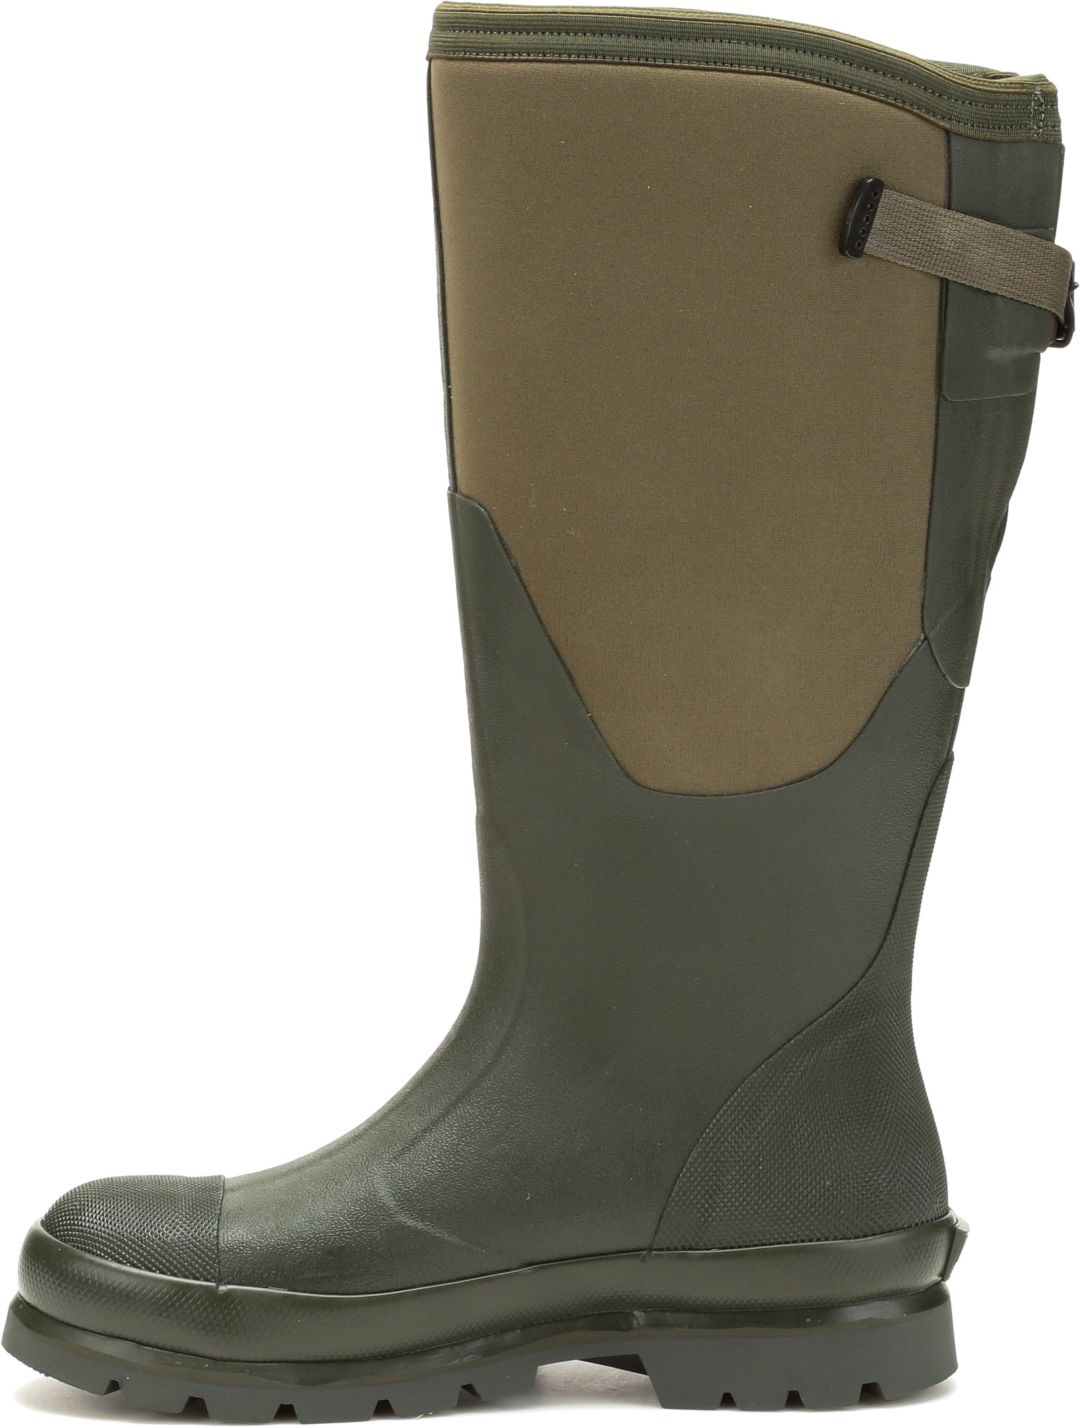 cc9614698aa Muck Boots Women's Chore Extended Fit Waterproof Work Boots